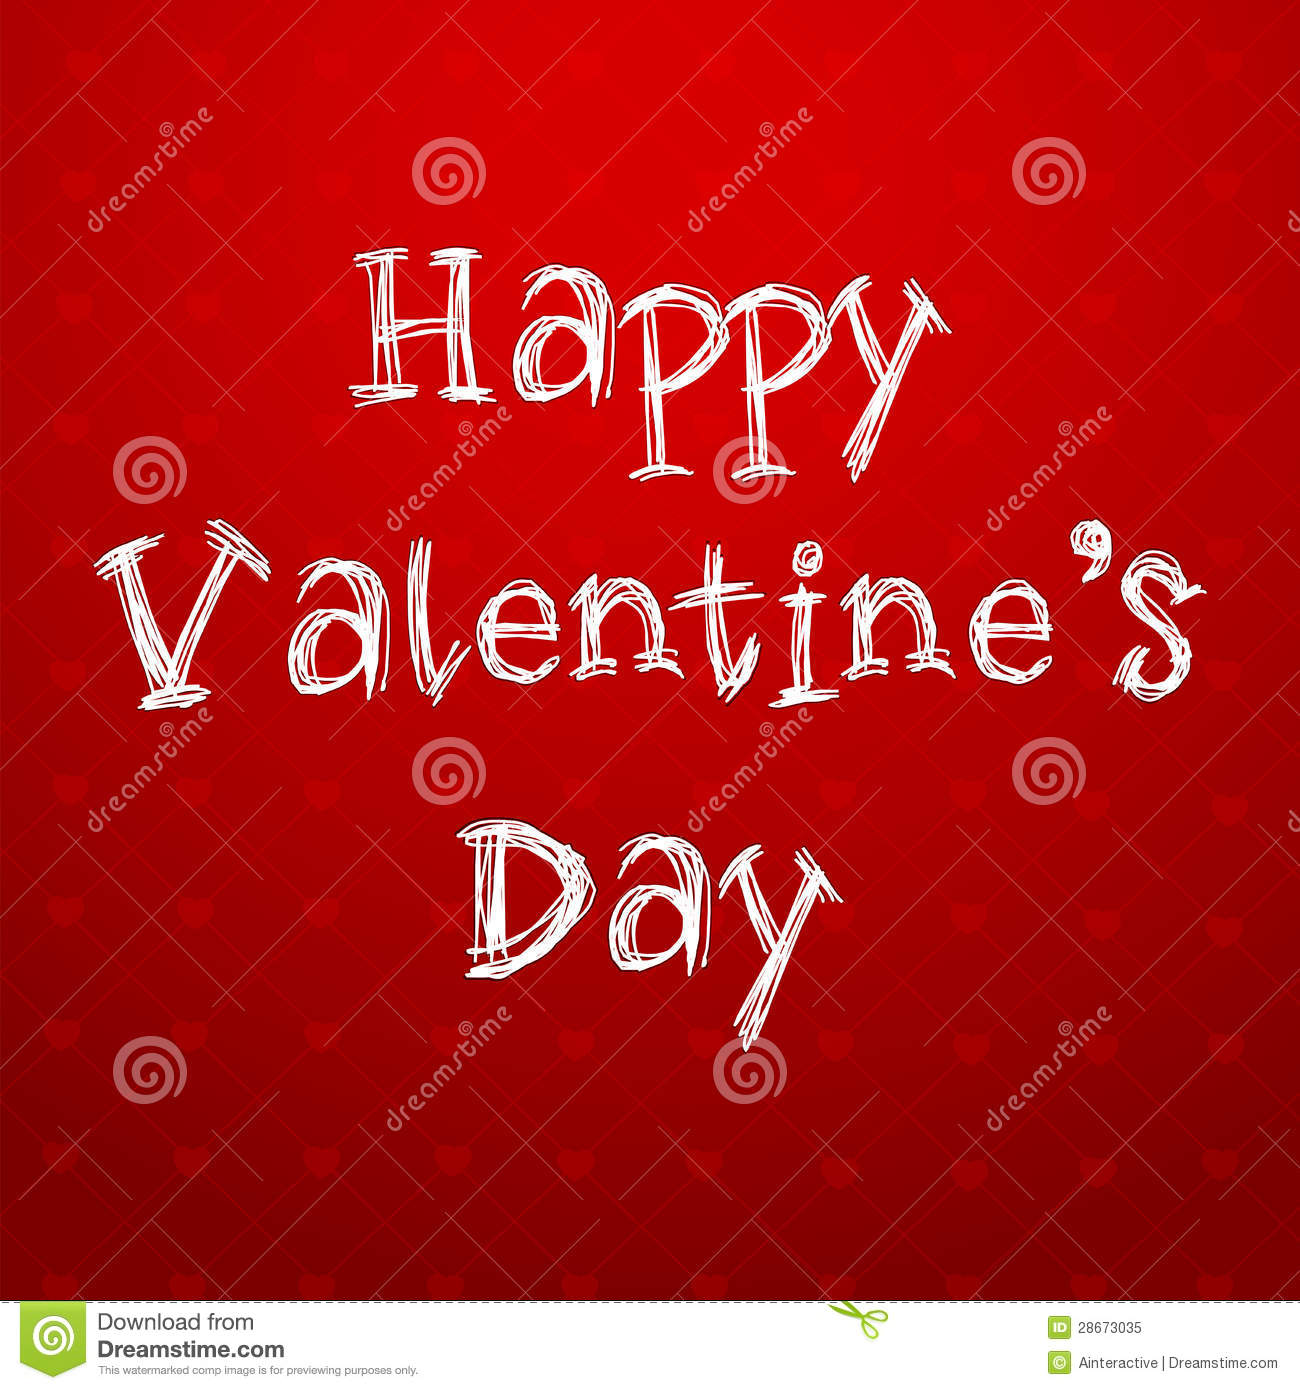 happy valentines day text on red background - Happy Valentines Day Pictures Free